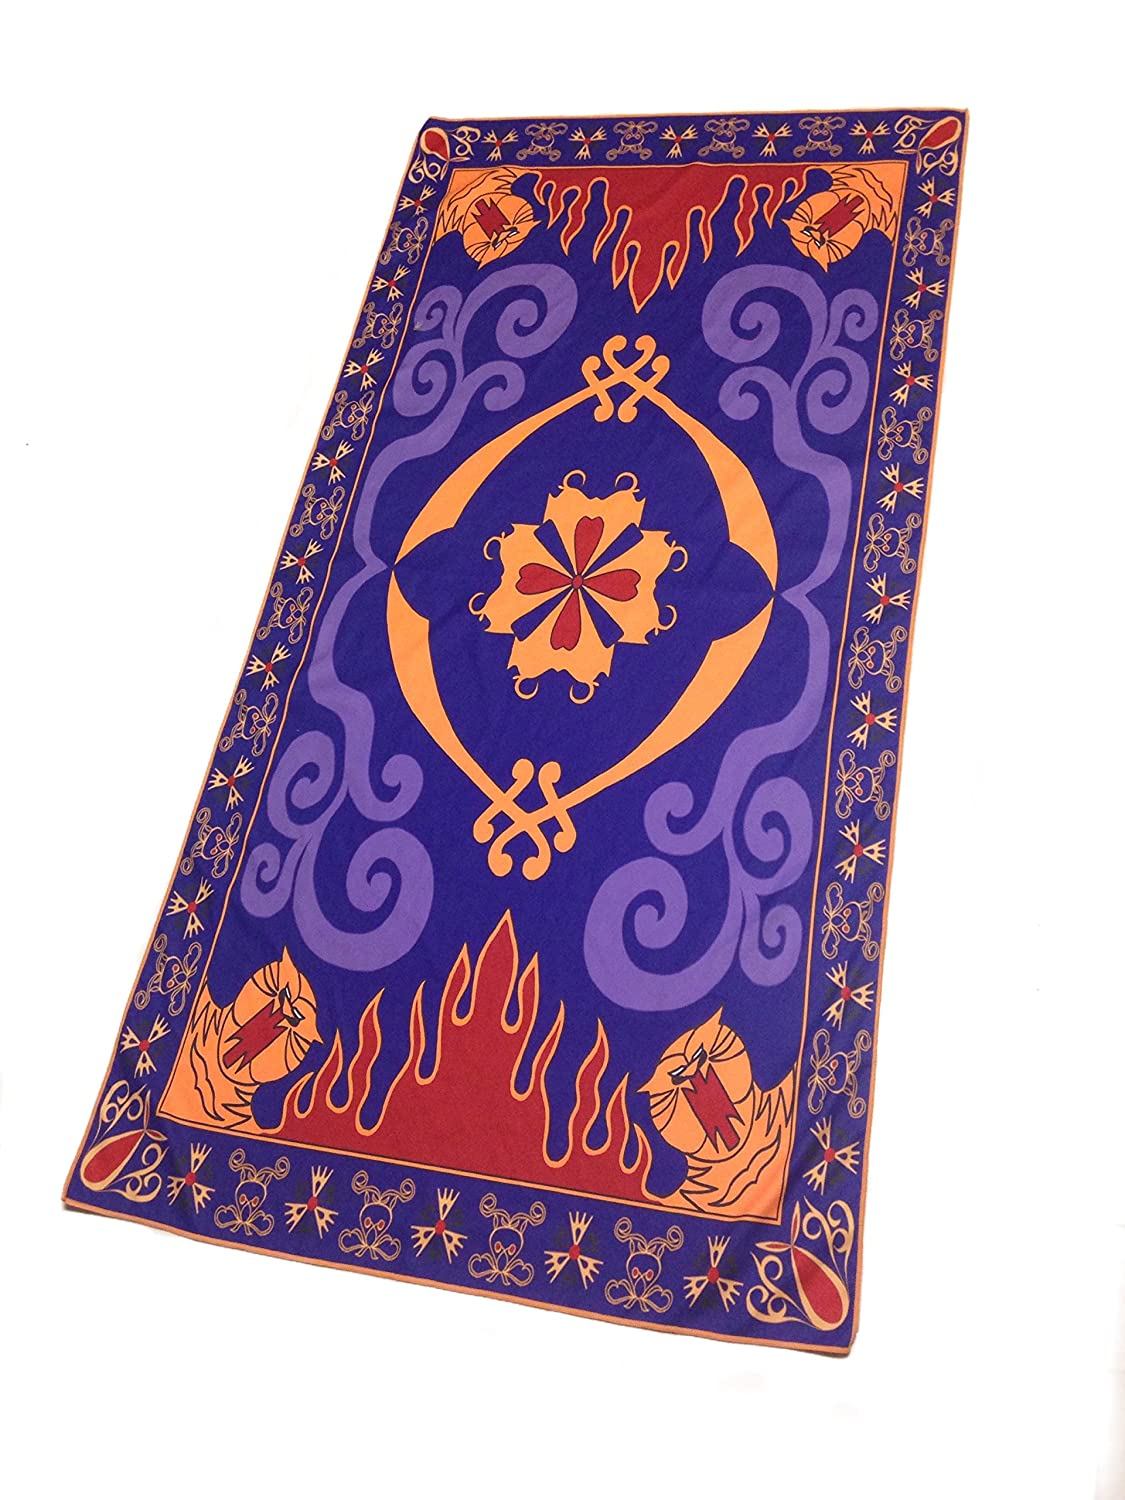 Tassels Placemat Magic Carpet Dish Towel Hand Towel Face Towel Tea Towel Inspired Disney Aladdin Magic Princess Whitney MagicPrincessWhitney